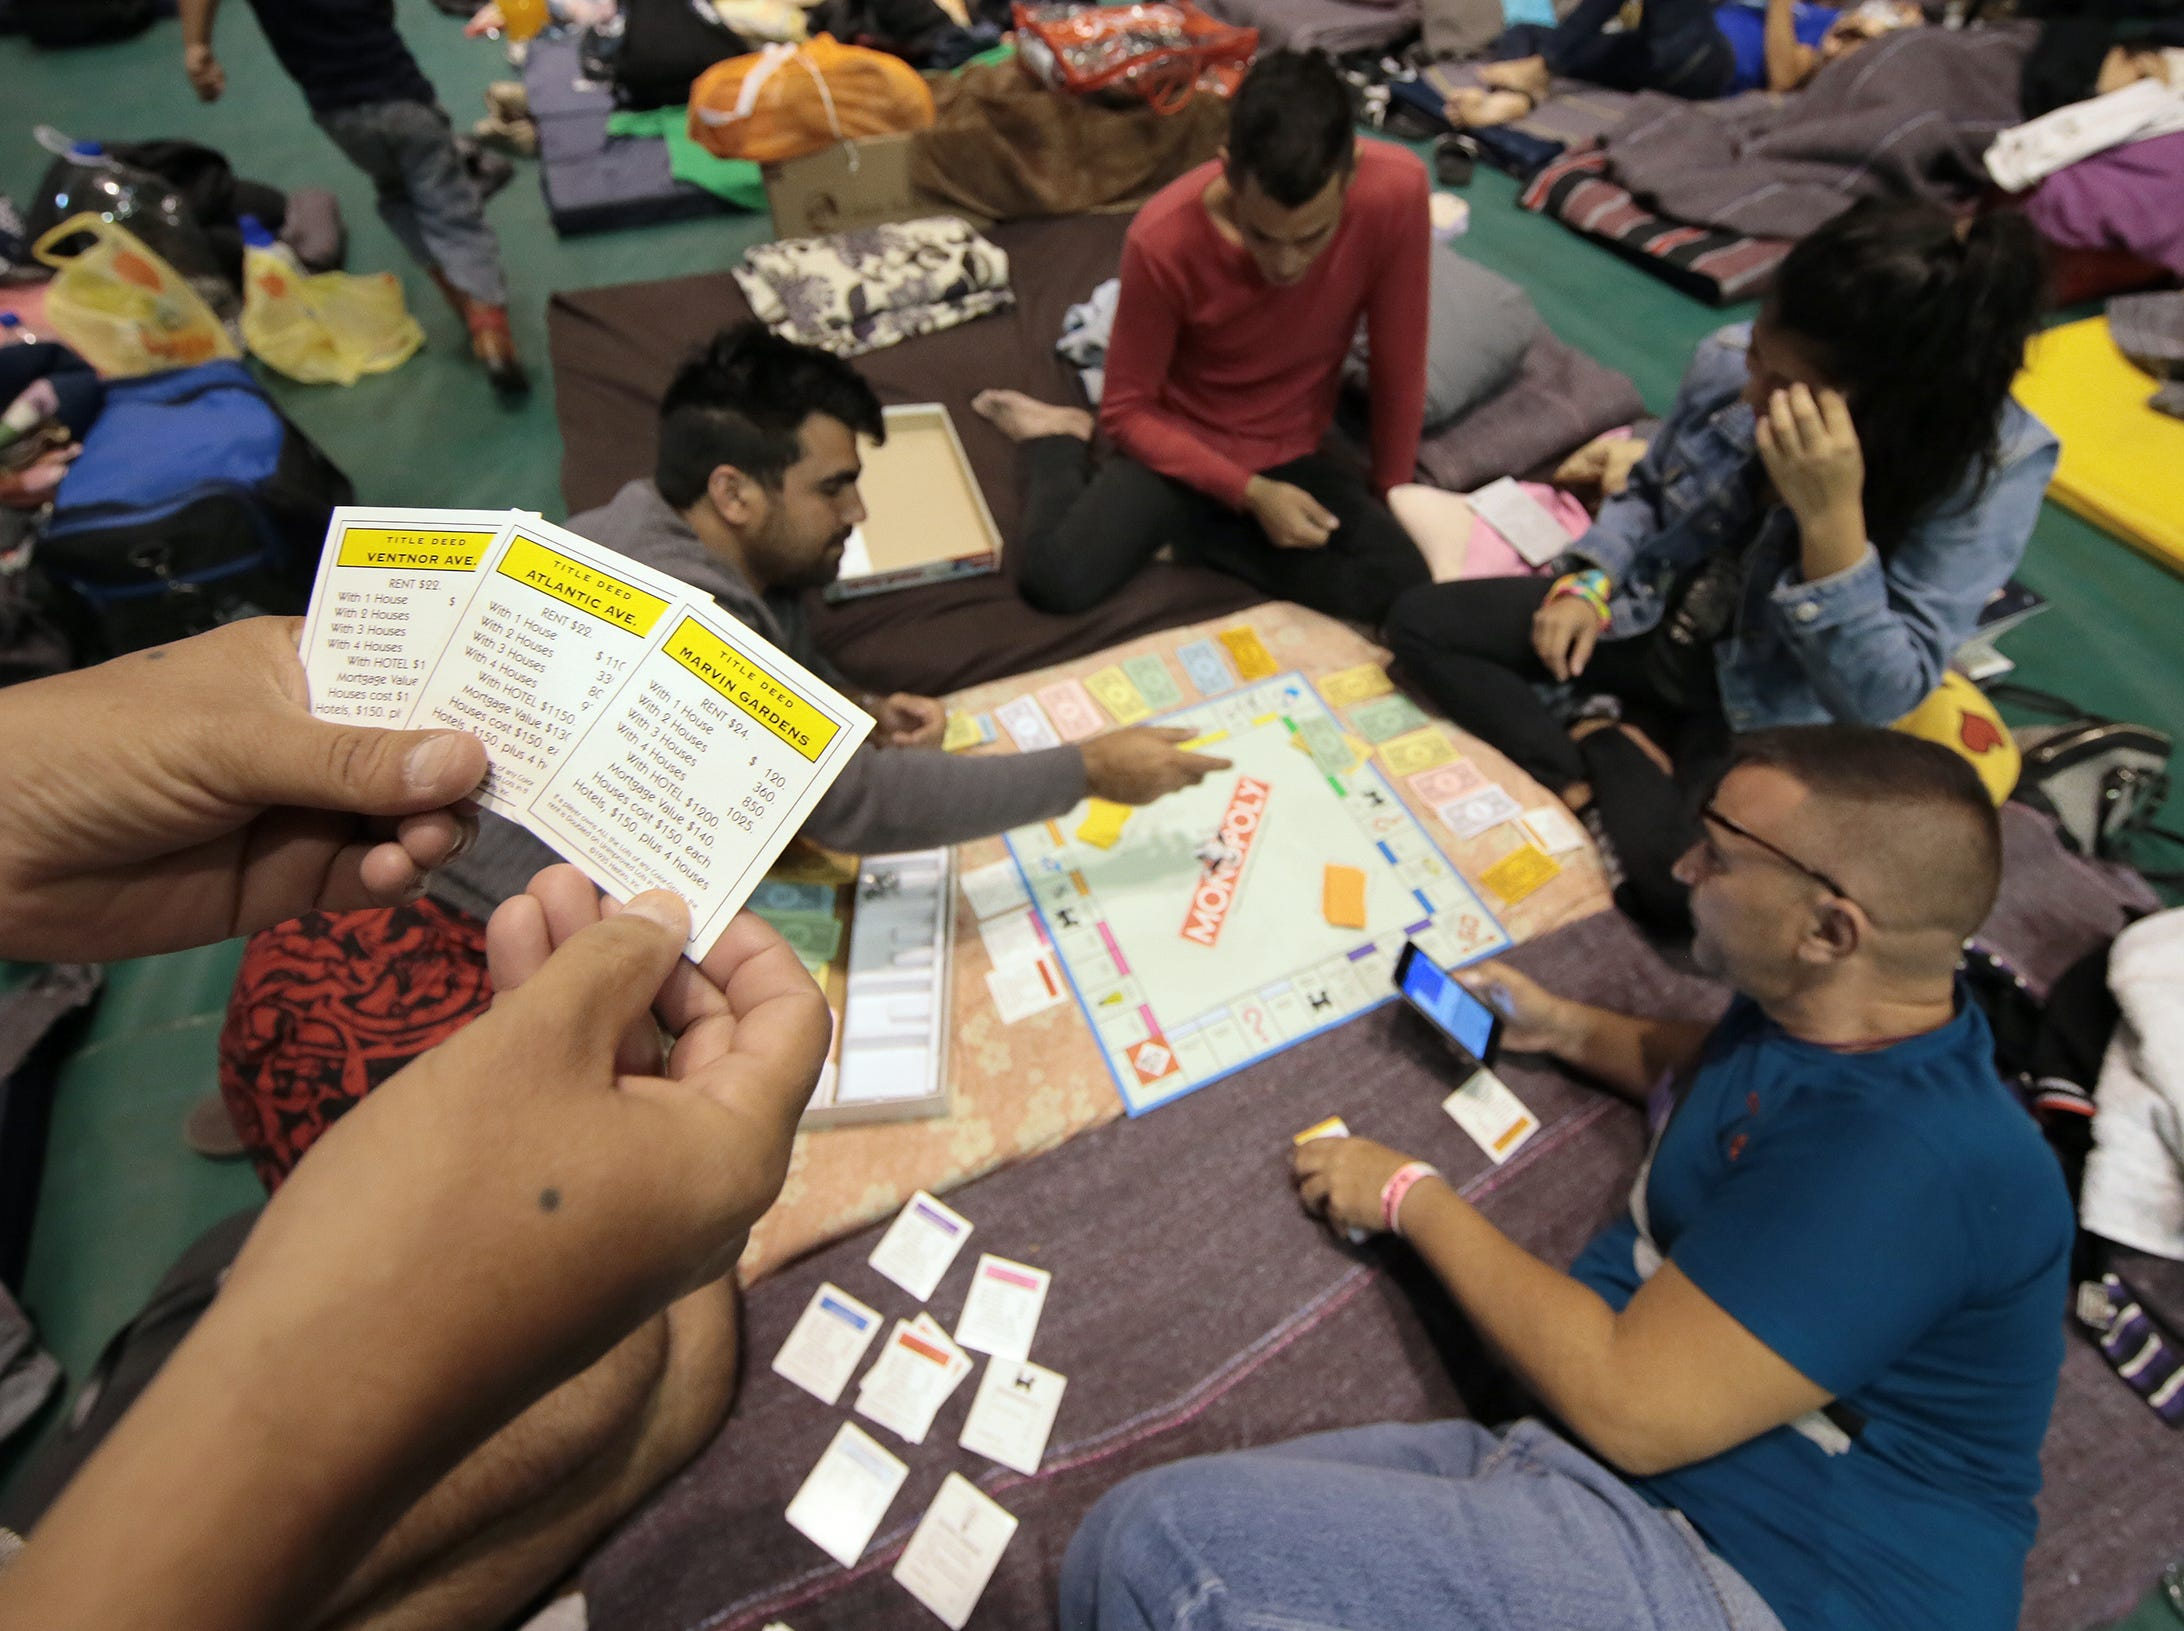 A group of Cuban migrants play Monopoly at a shelter in Juarez.